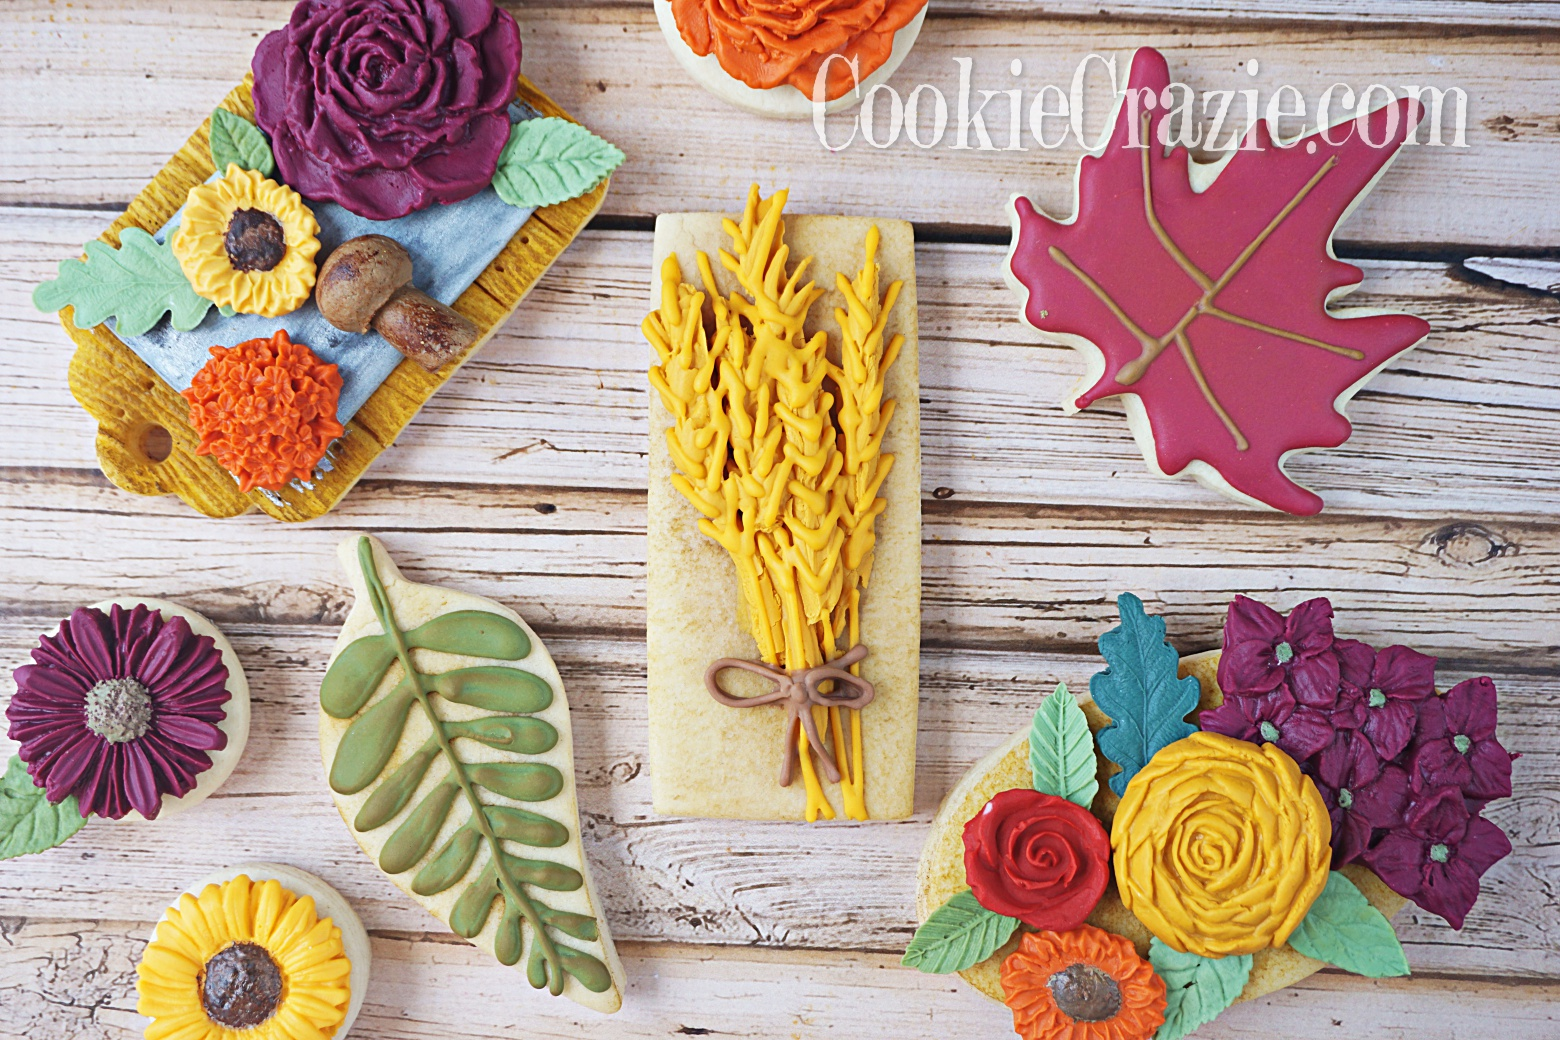 Wheat Bouquet Decorated Sugar Cookie YouTube video  HERE